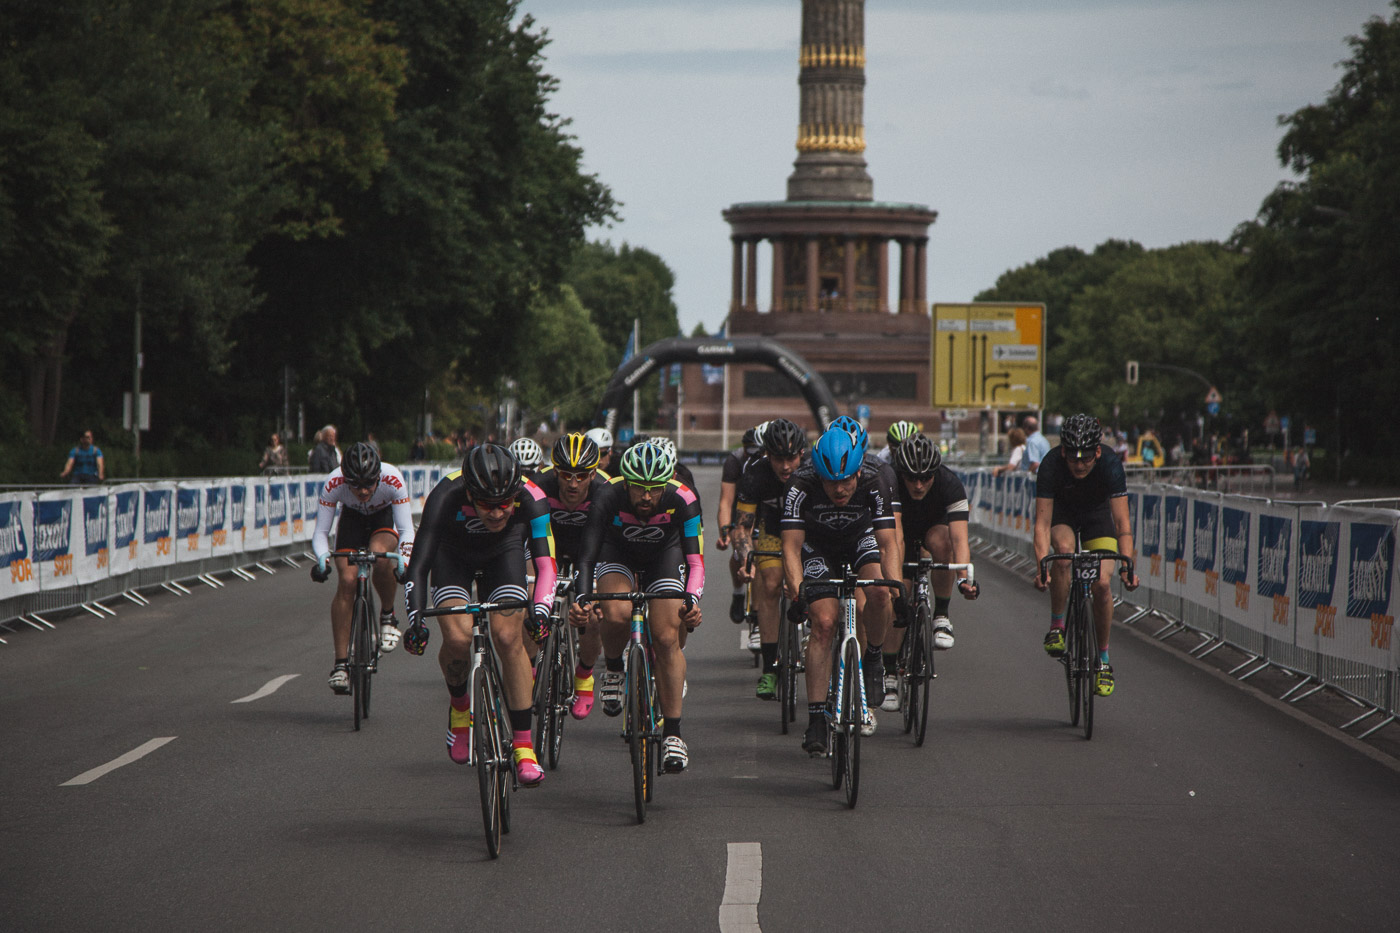 RAD RACE Fixed42 World Championship, Berlin May31st, Pic by stefanhaehnel.com_03.jpg